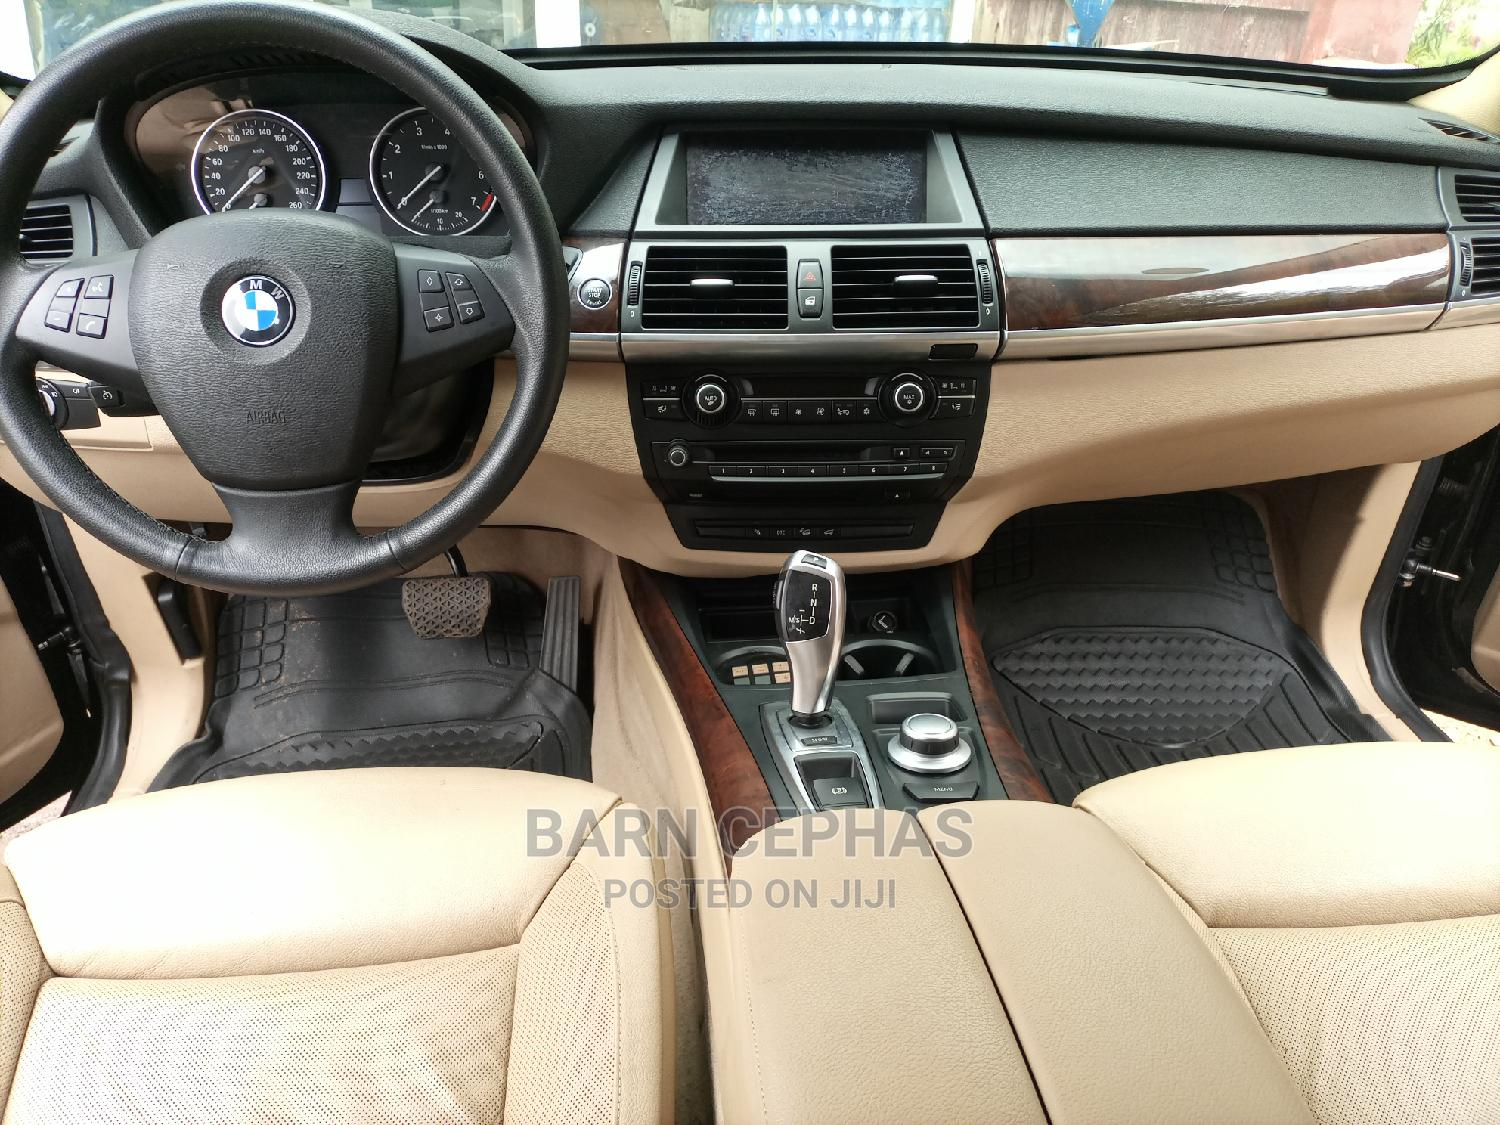 BMW X5 2013 Black | Cars for sale in Central Business District, Abuja (FCT) State, Nigeria